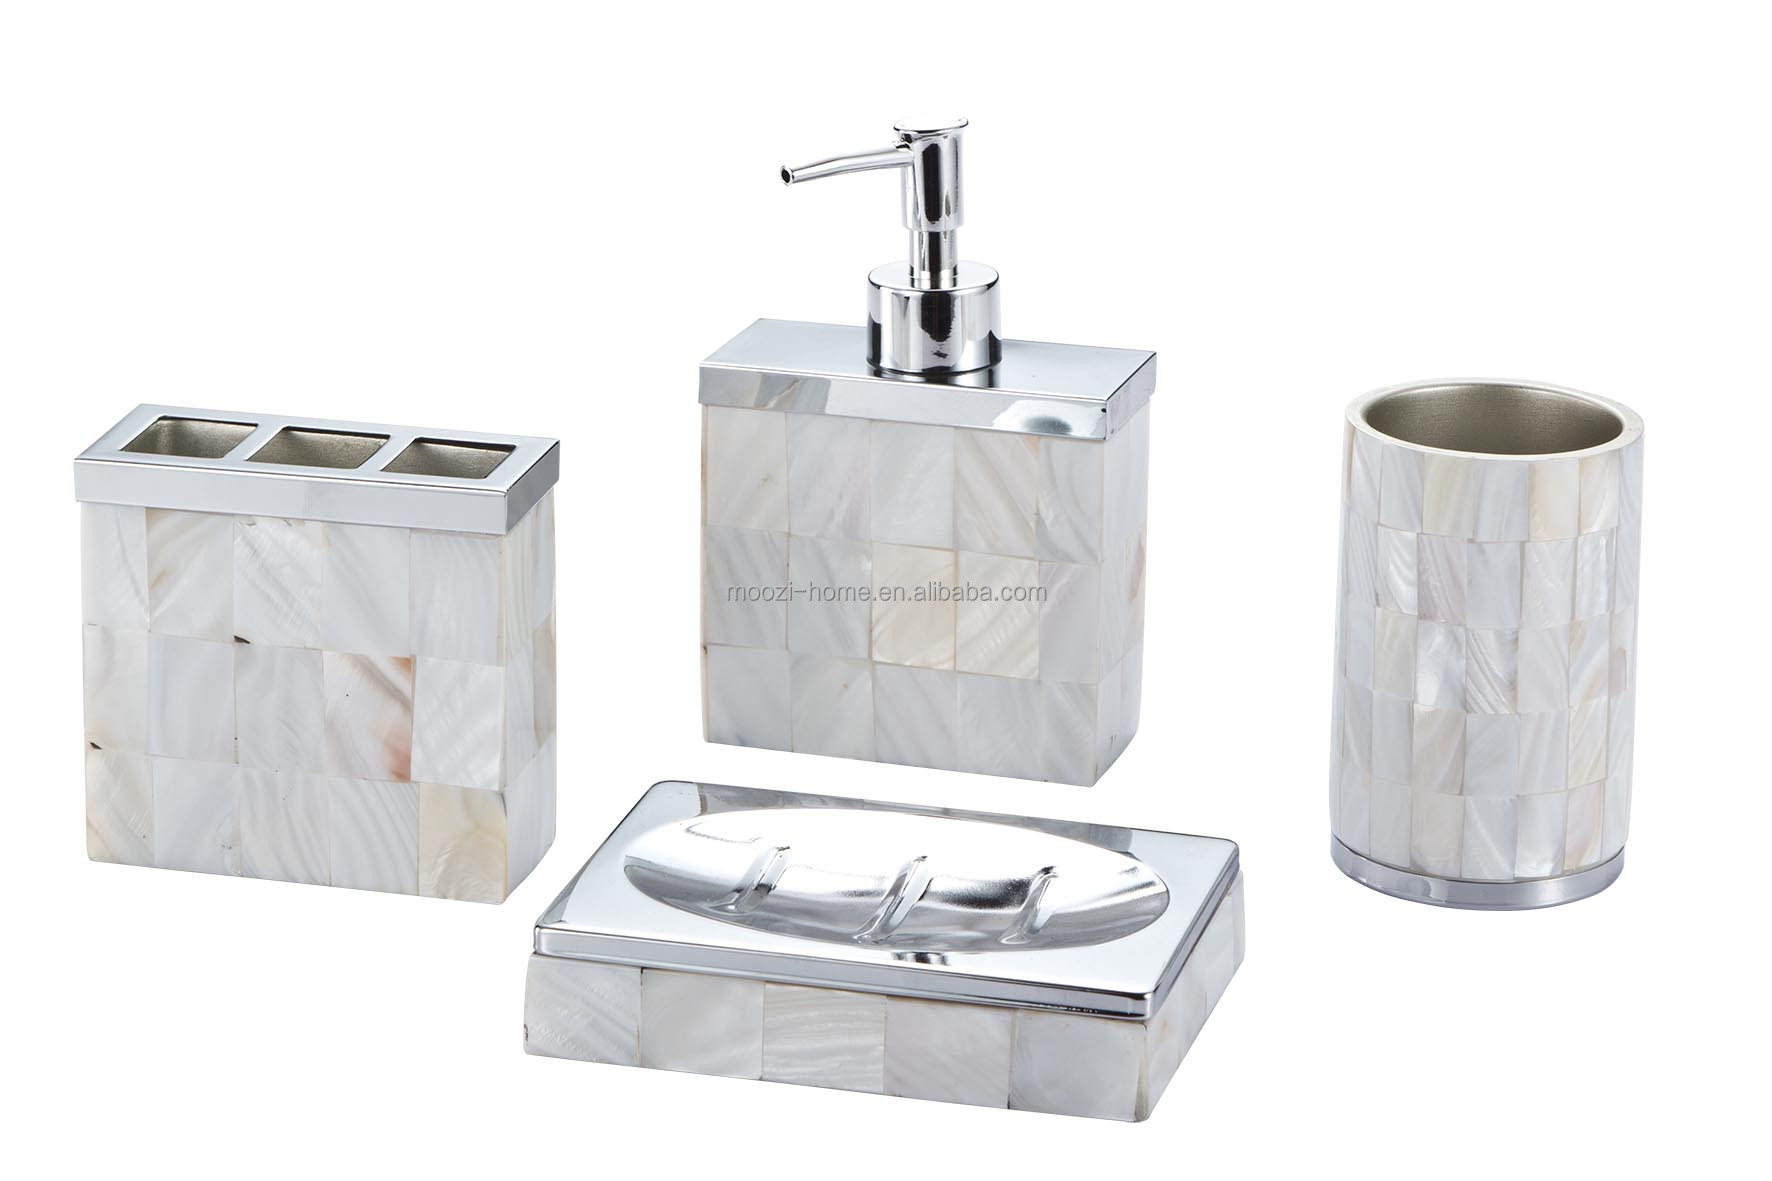 Silvery stone like resin bathroom set soap dispenser buy for Bathroom soap dispensers bath accessories